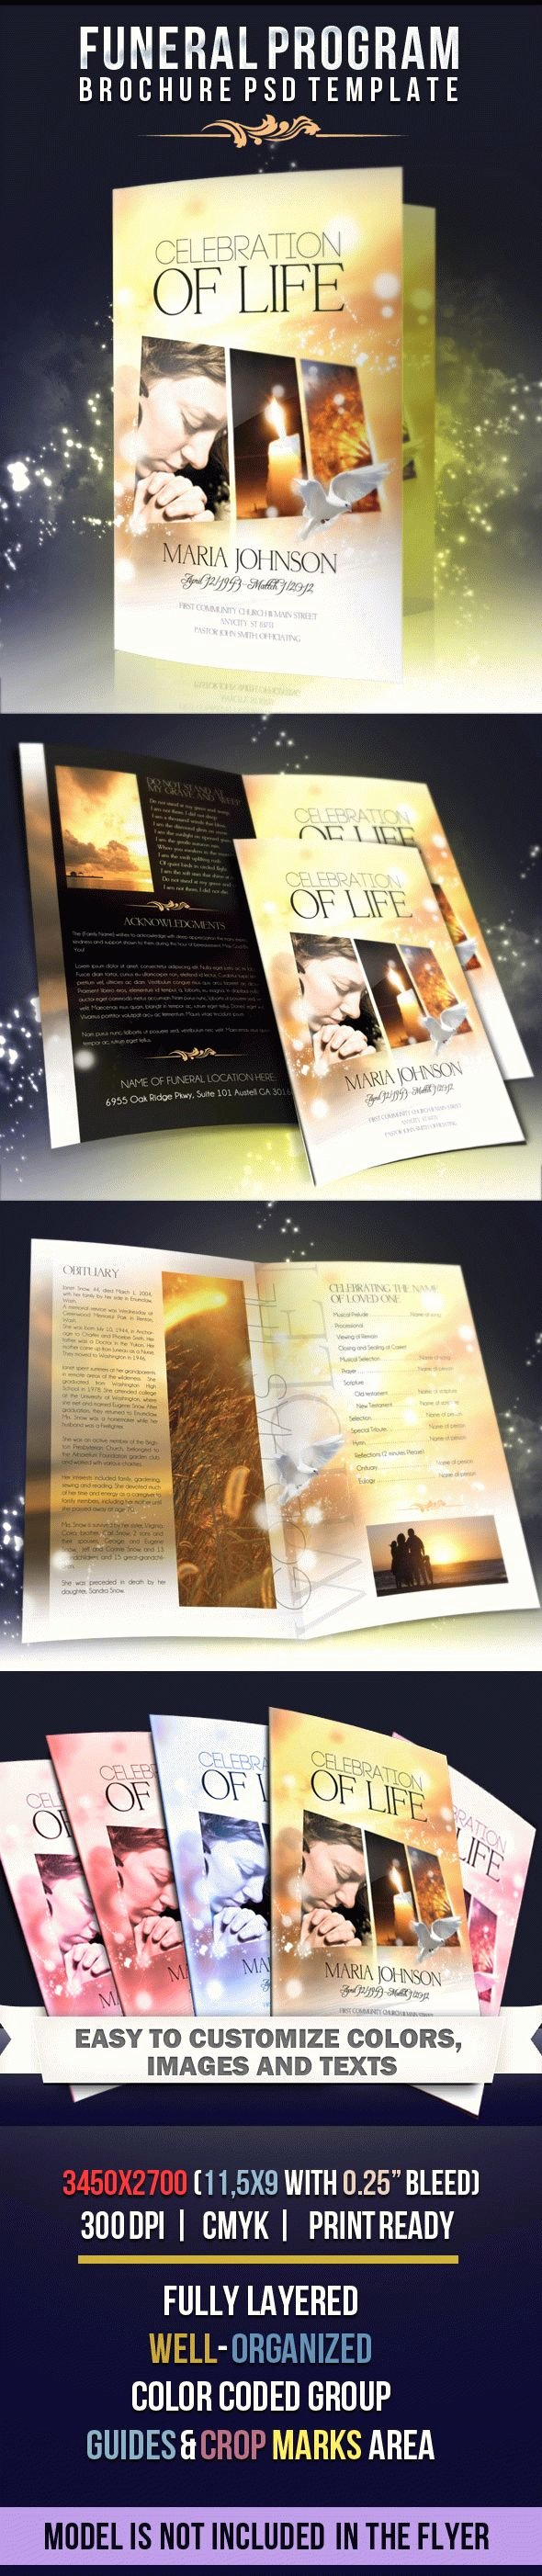 Celebration Of Life – Free Funeral Program Brochure In Psd